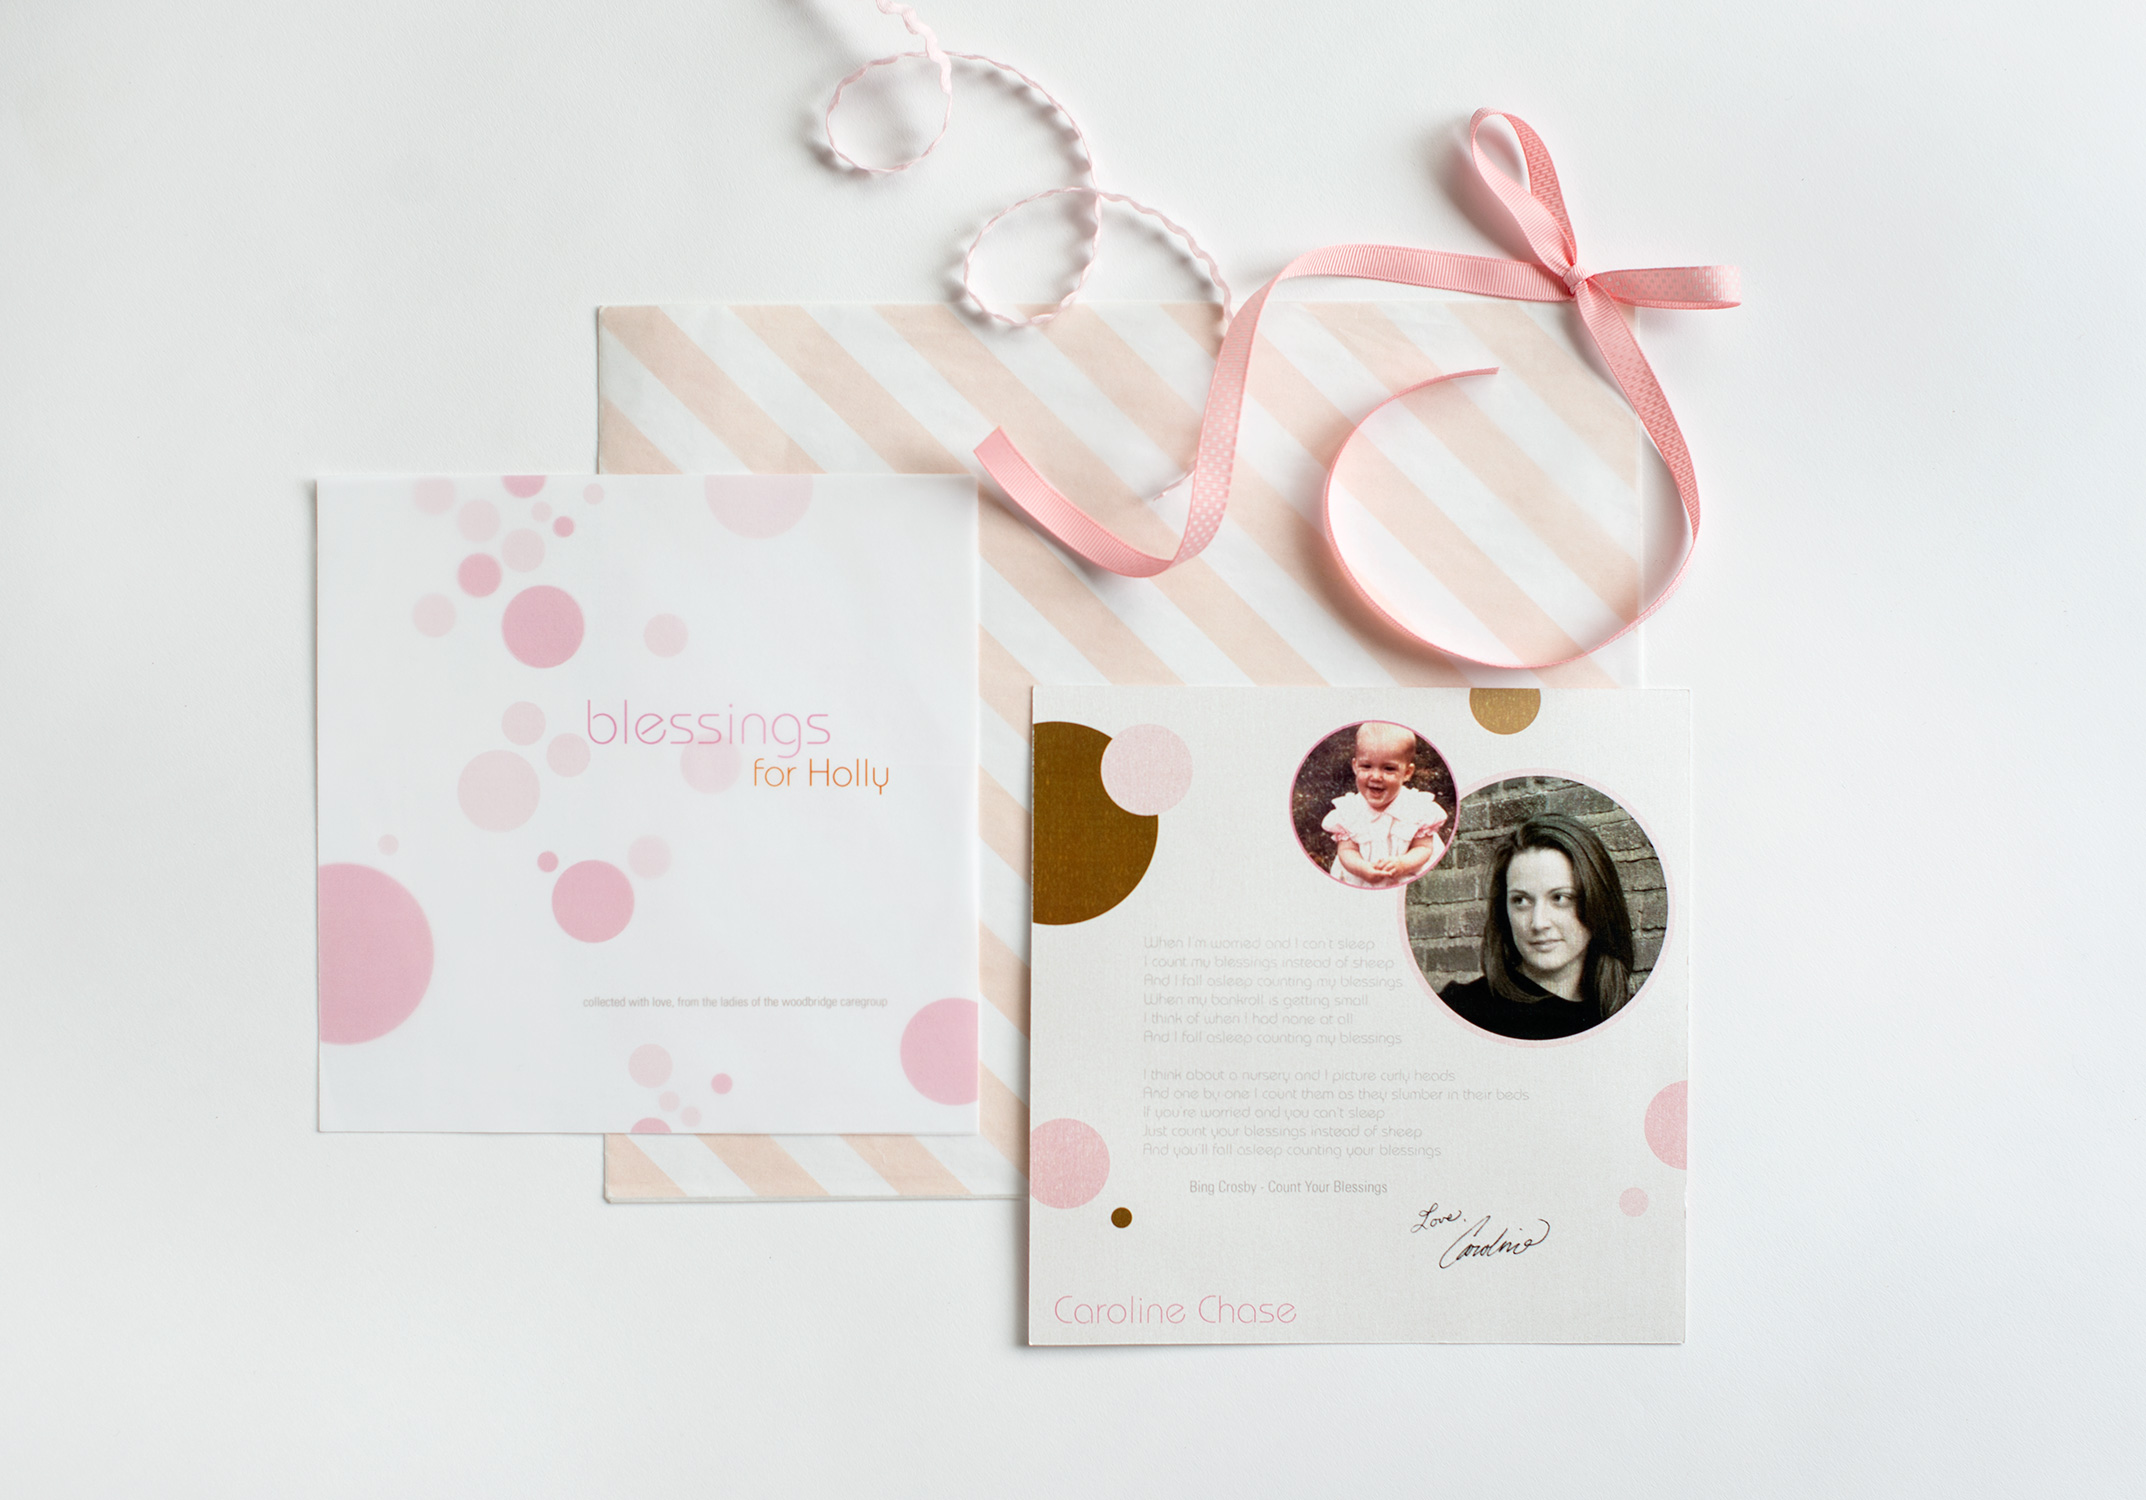 Baby Blessings Book Pages